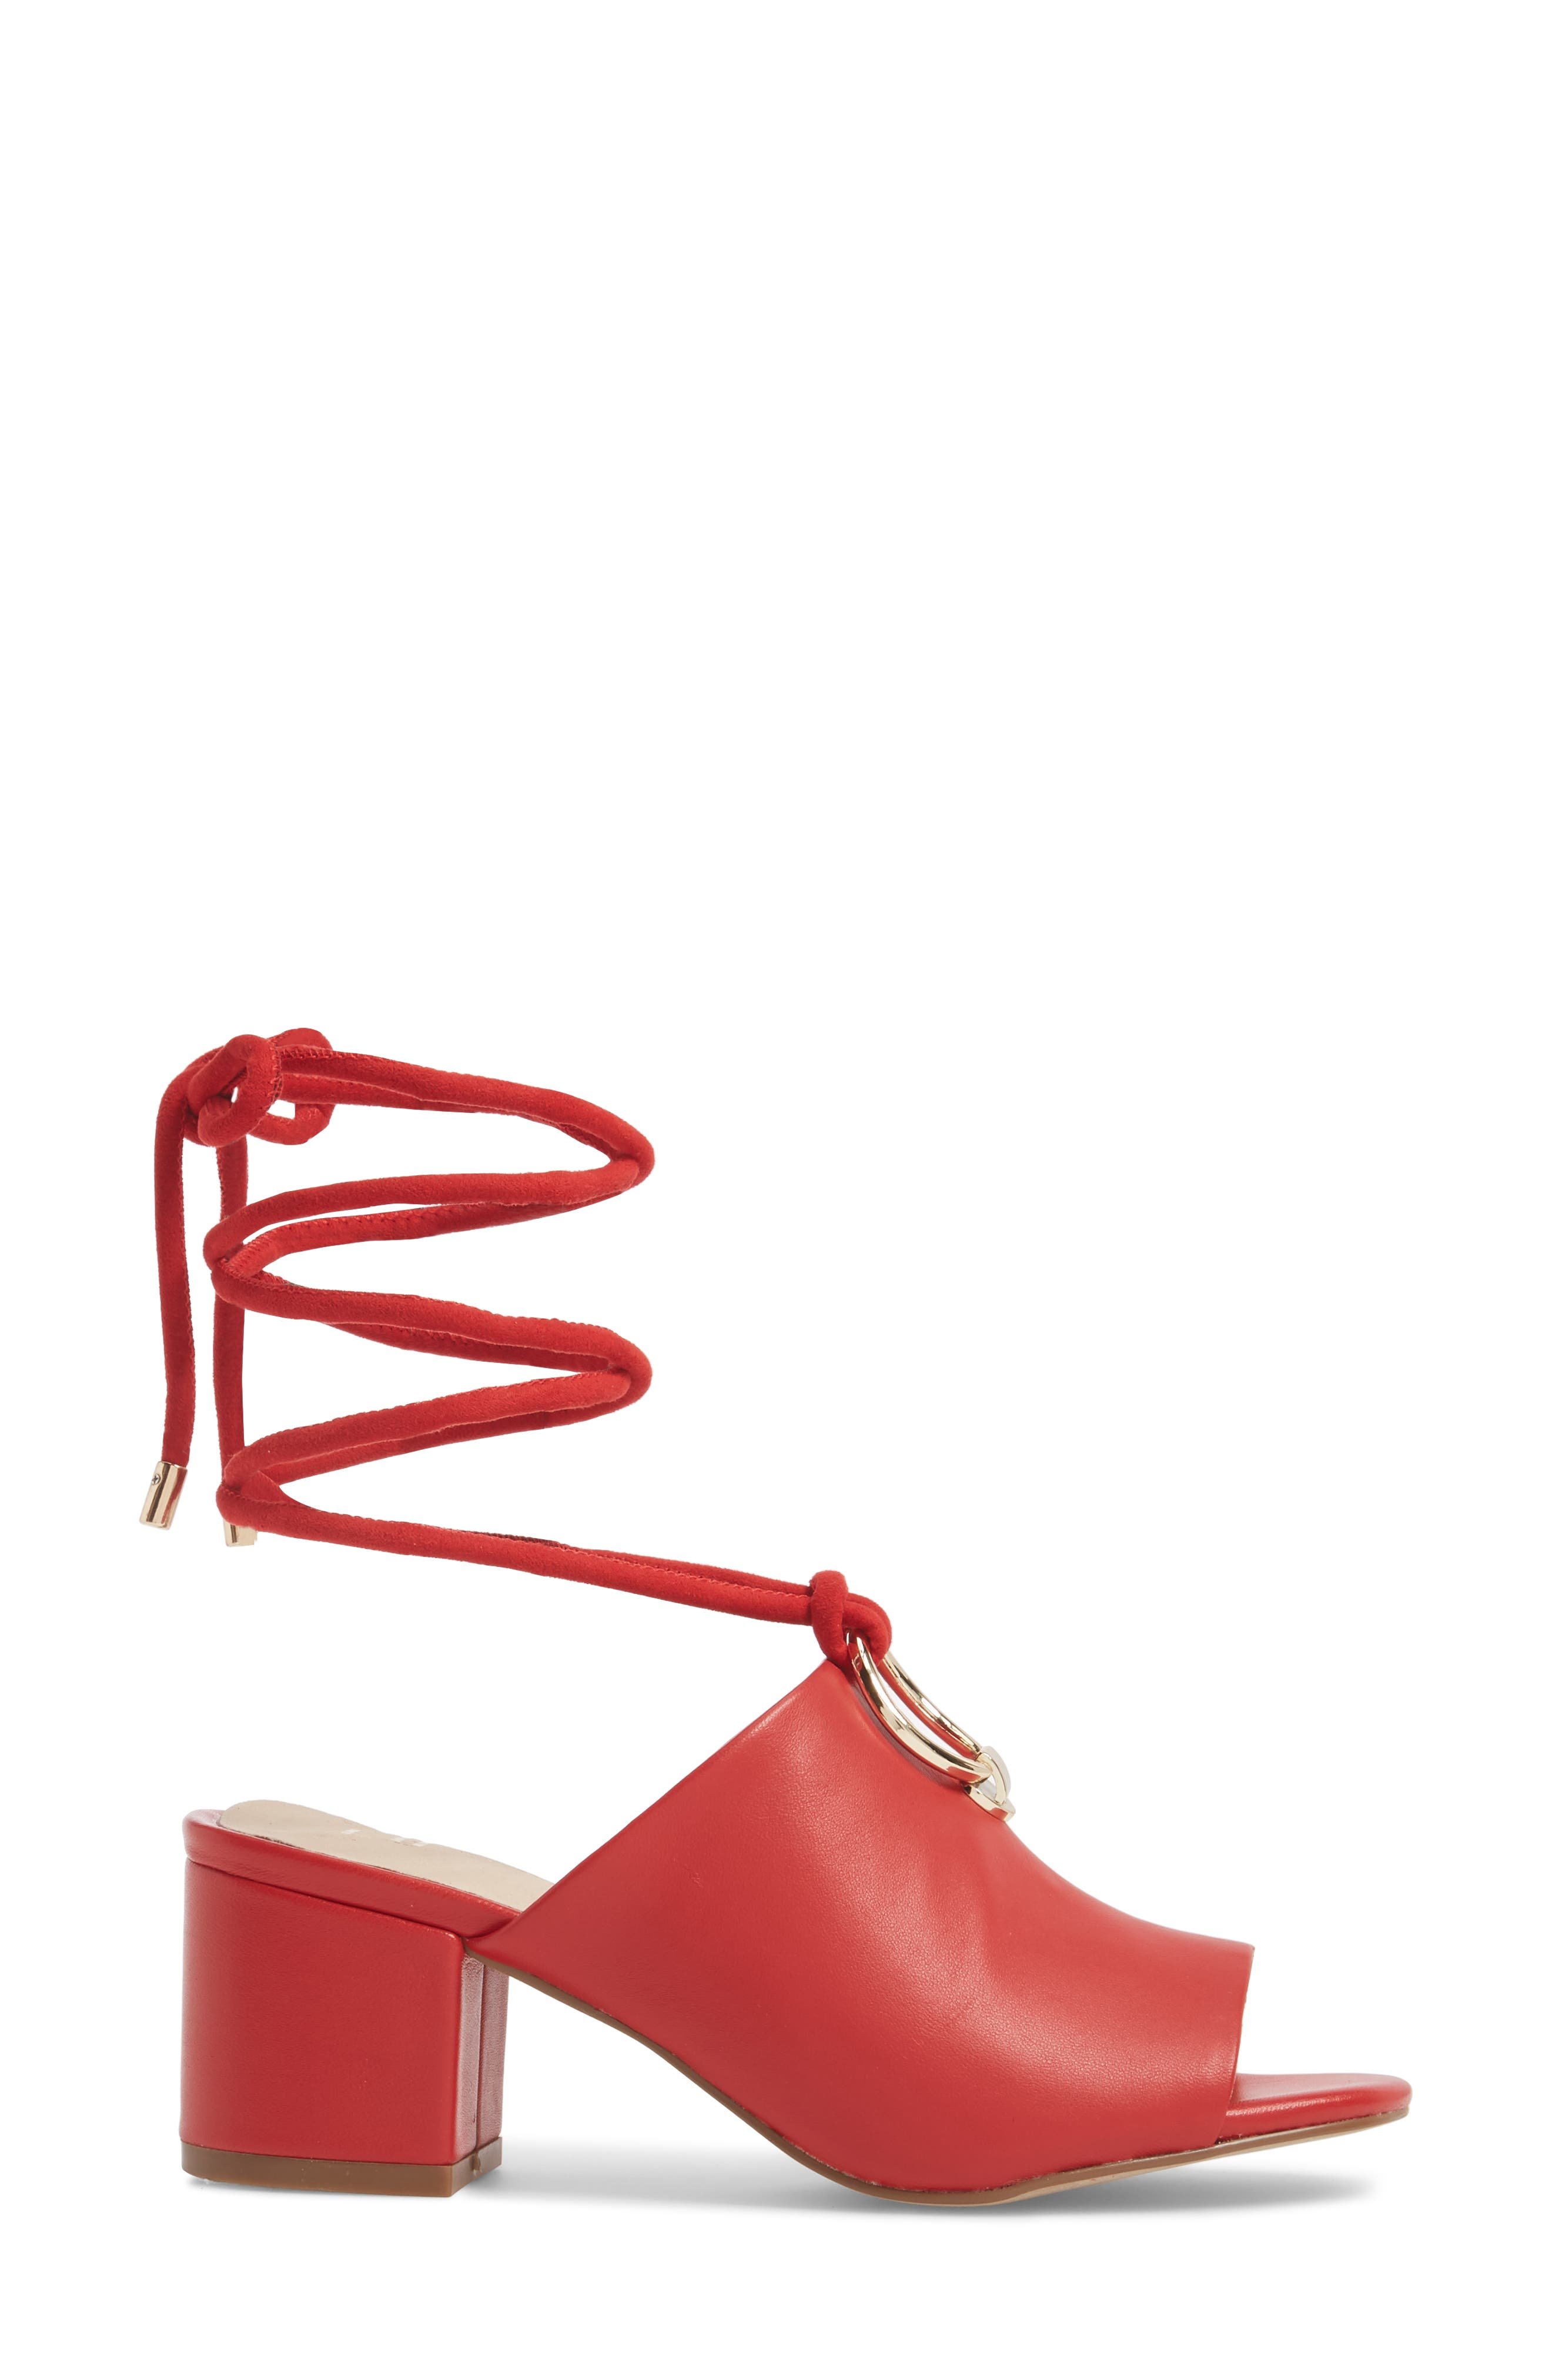 Mason Ankle Tie Sandal,                             Alternate thumbnail 3, color,                             Red Leather